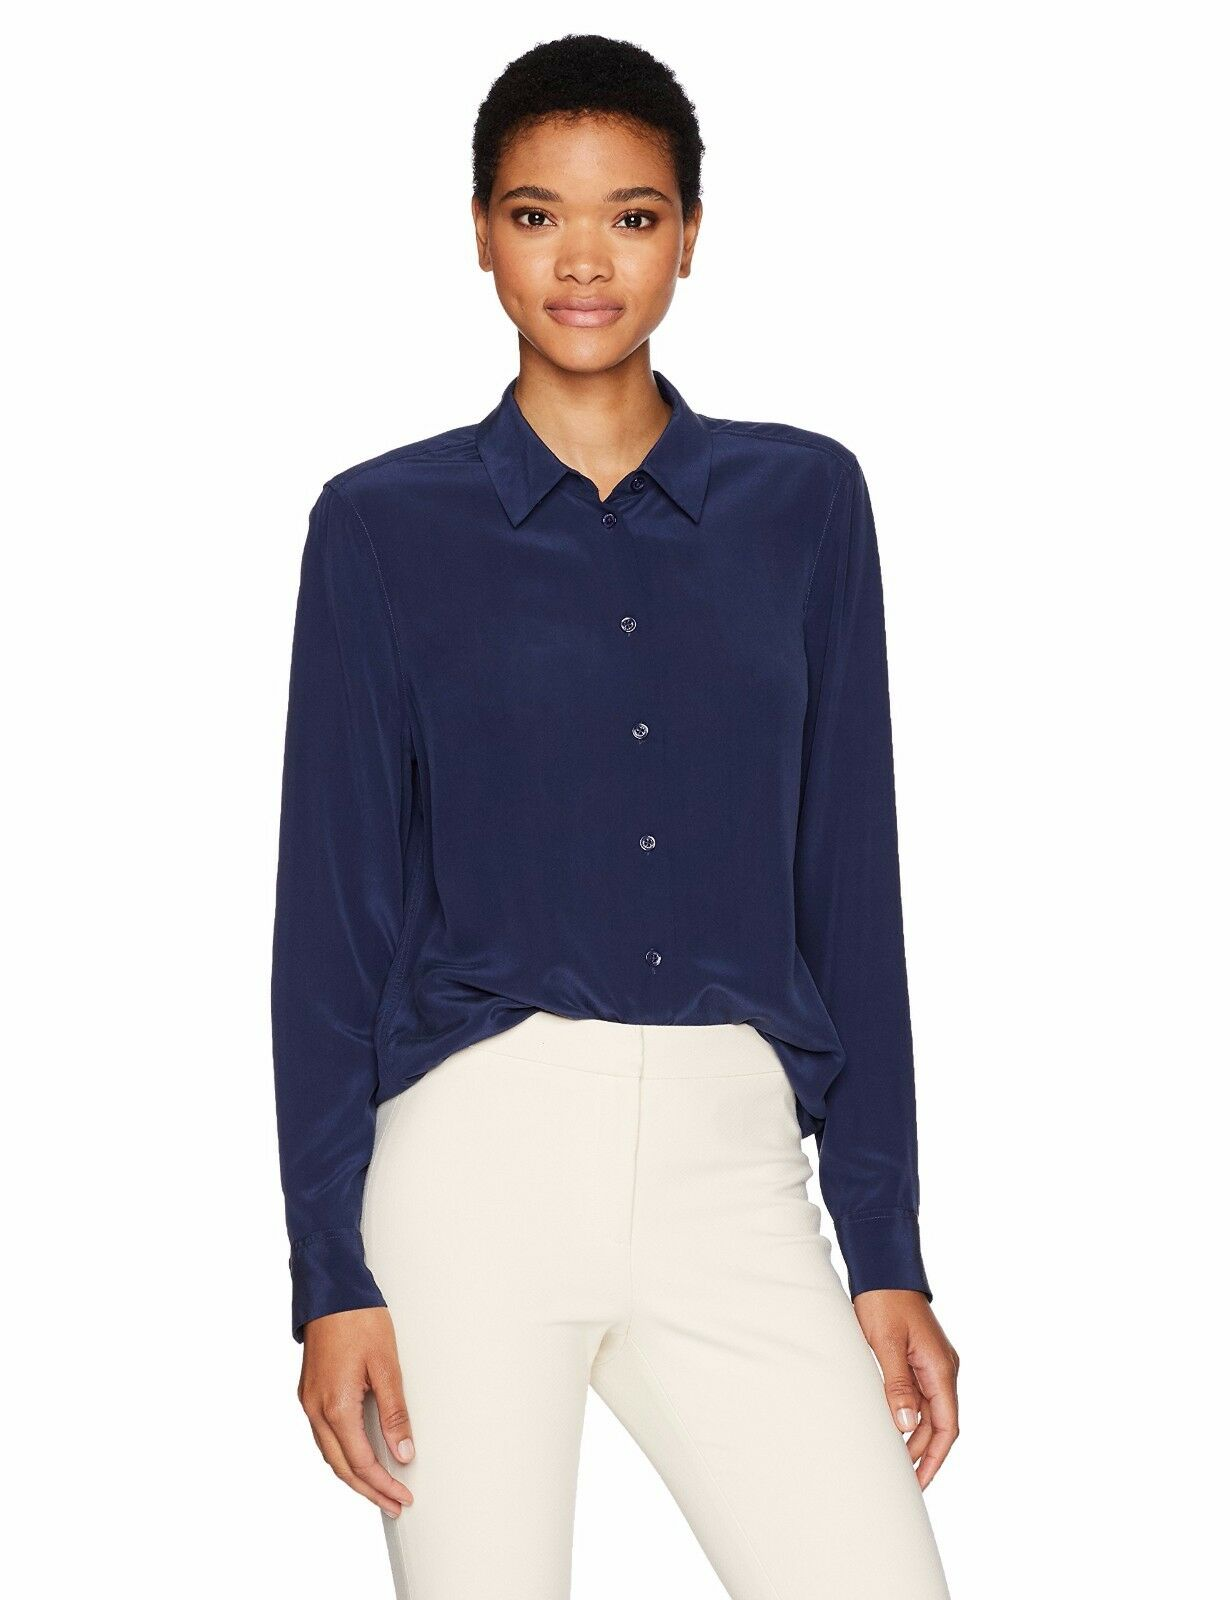 NEW Equipment Essential damen silk Shirt Blouse Atlantic Deep Blau Navy XS S M